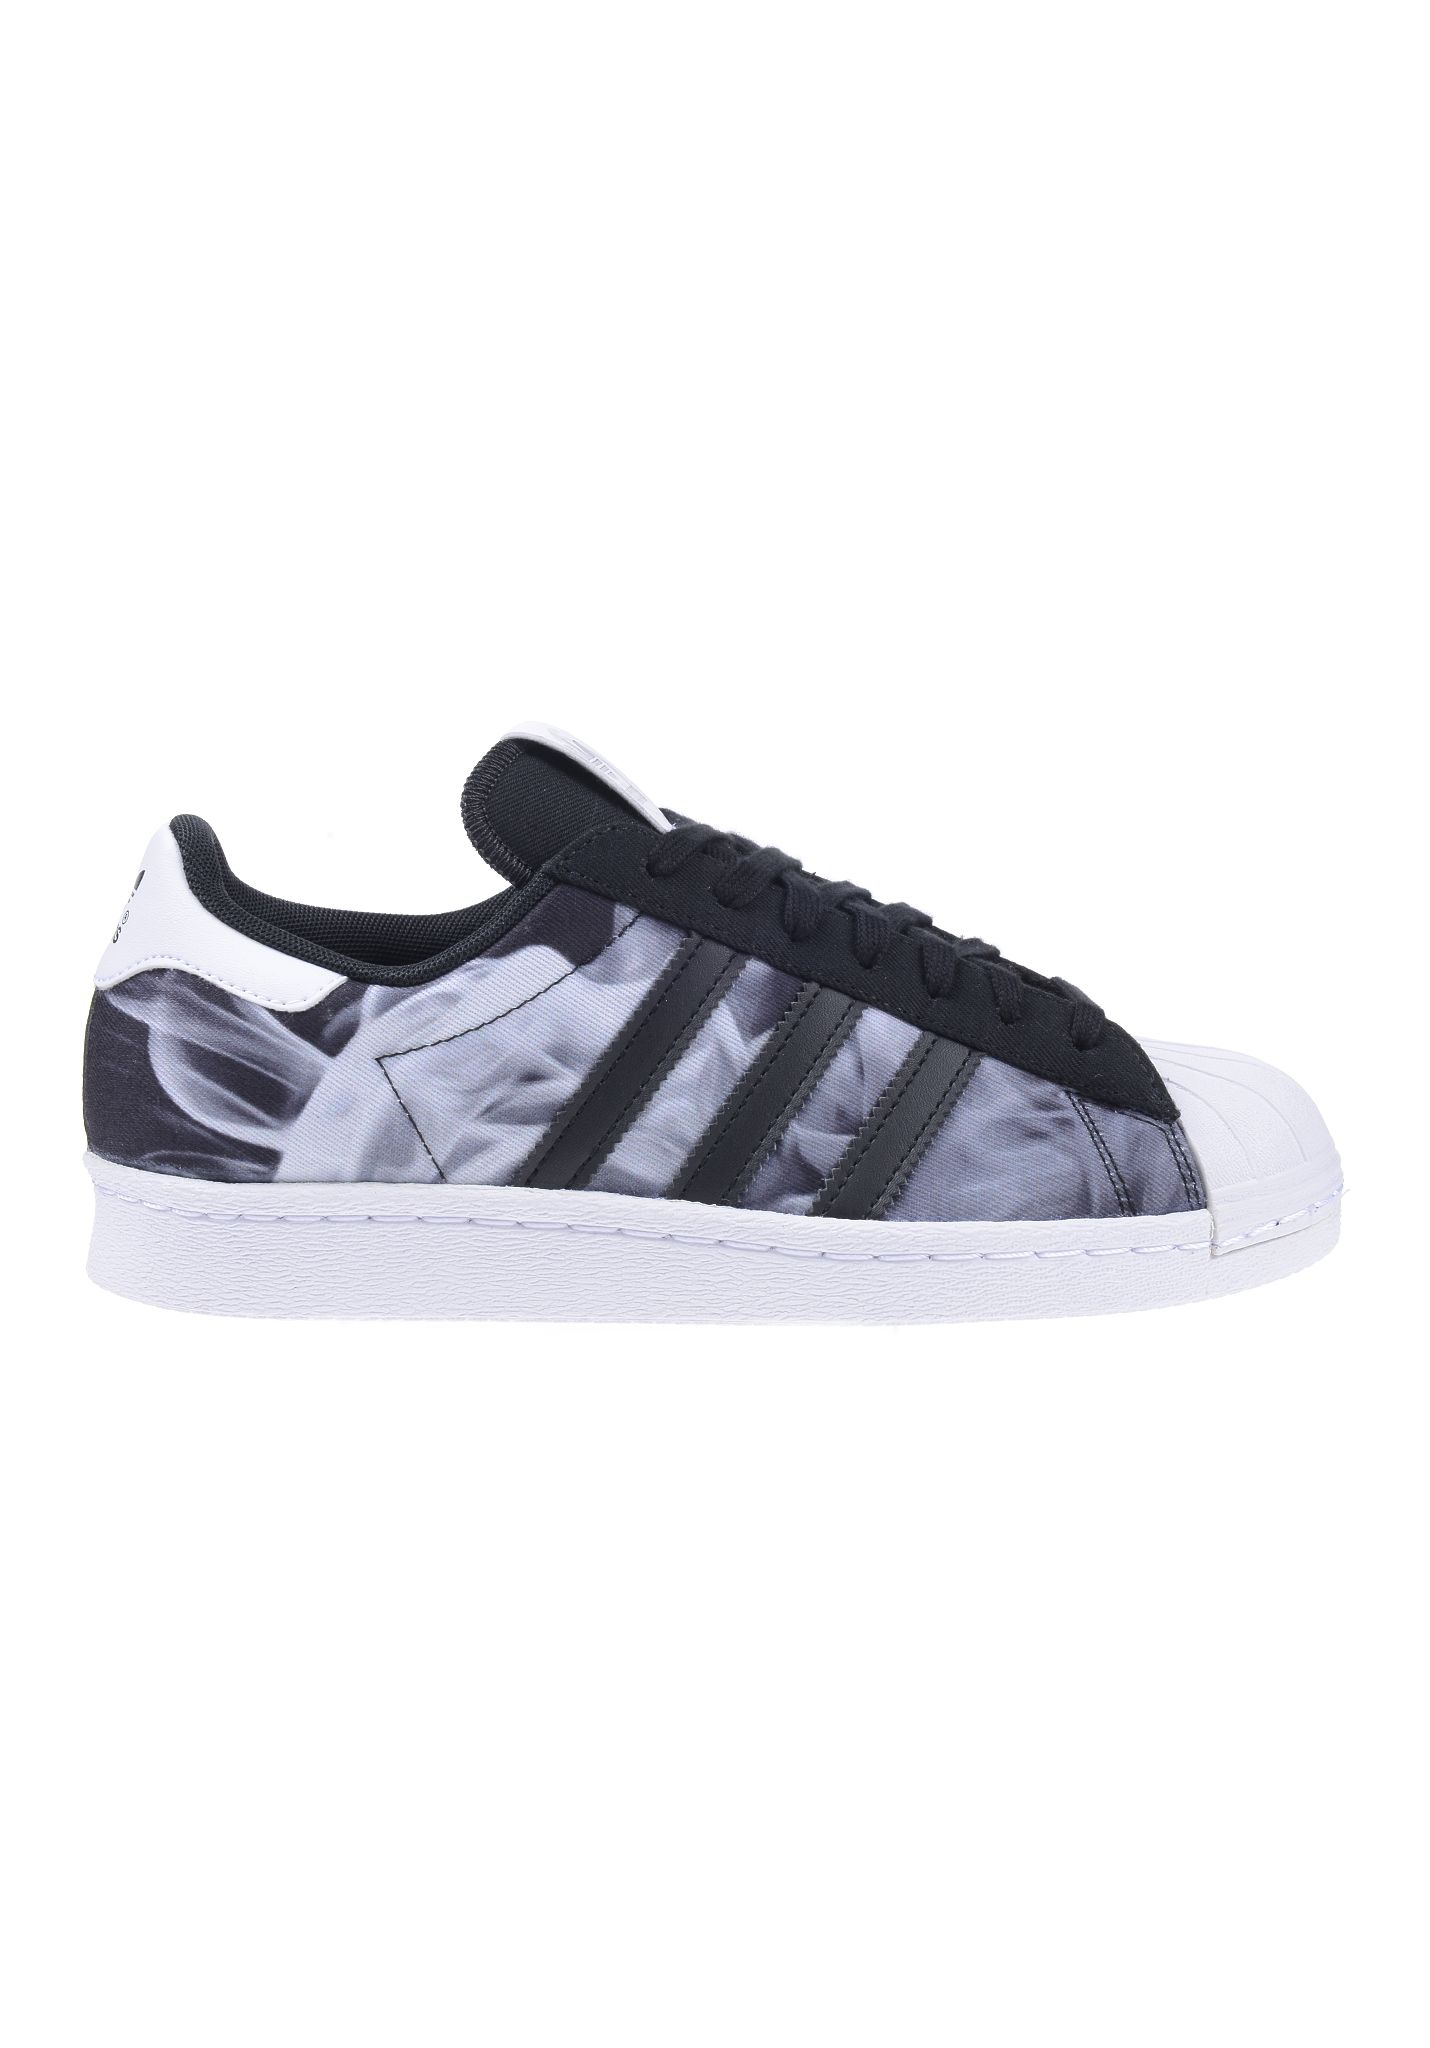 Adidas Superstar Muster